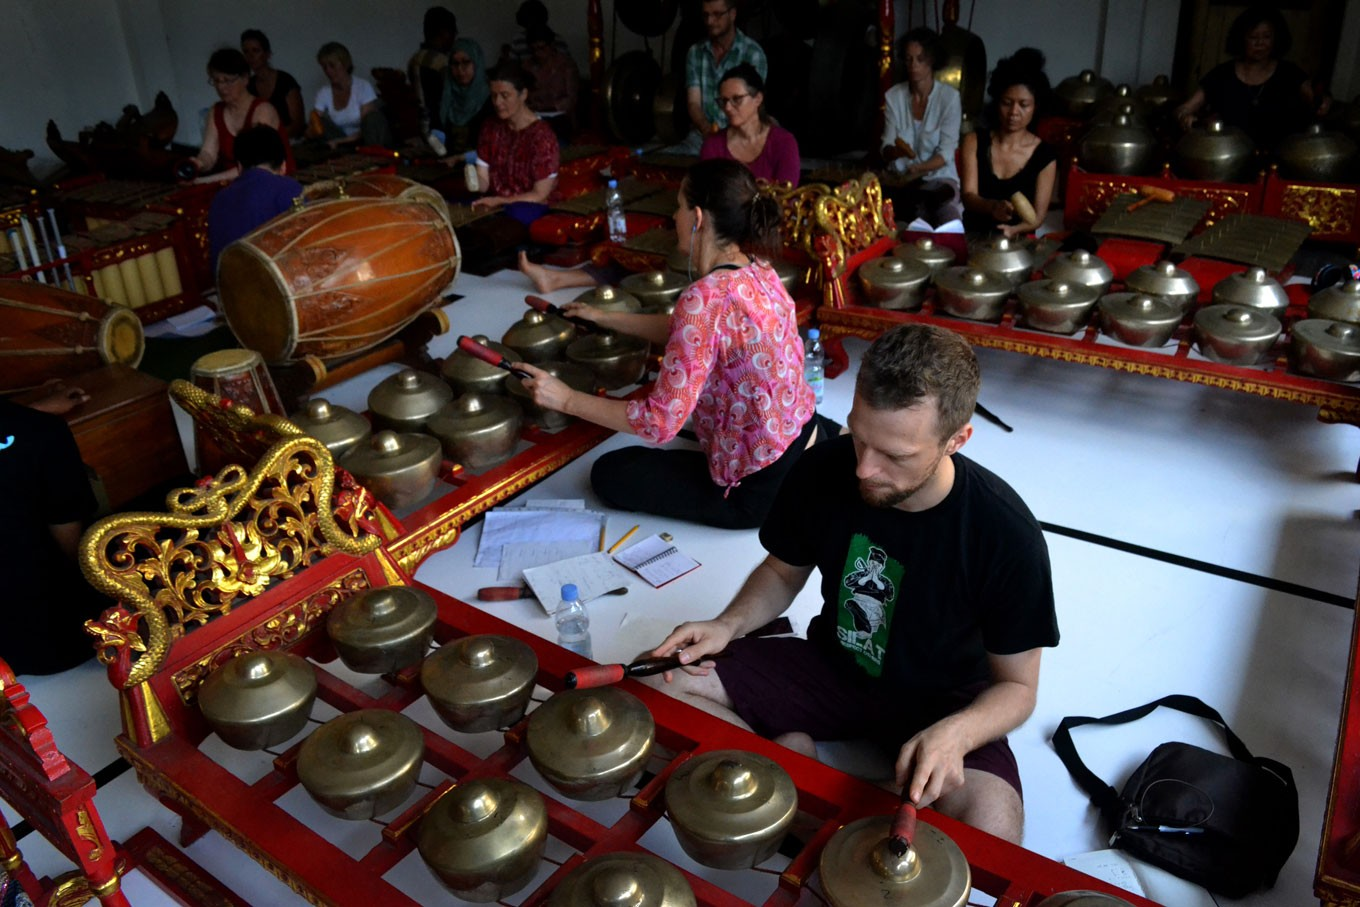 French students learn, collaborate on traditional Javanese performing arts